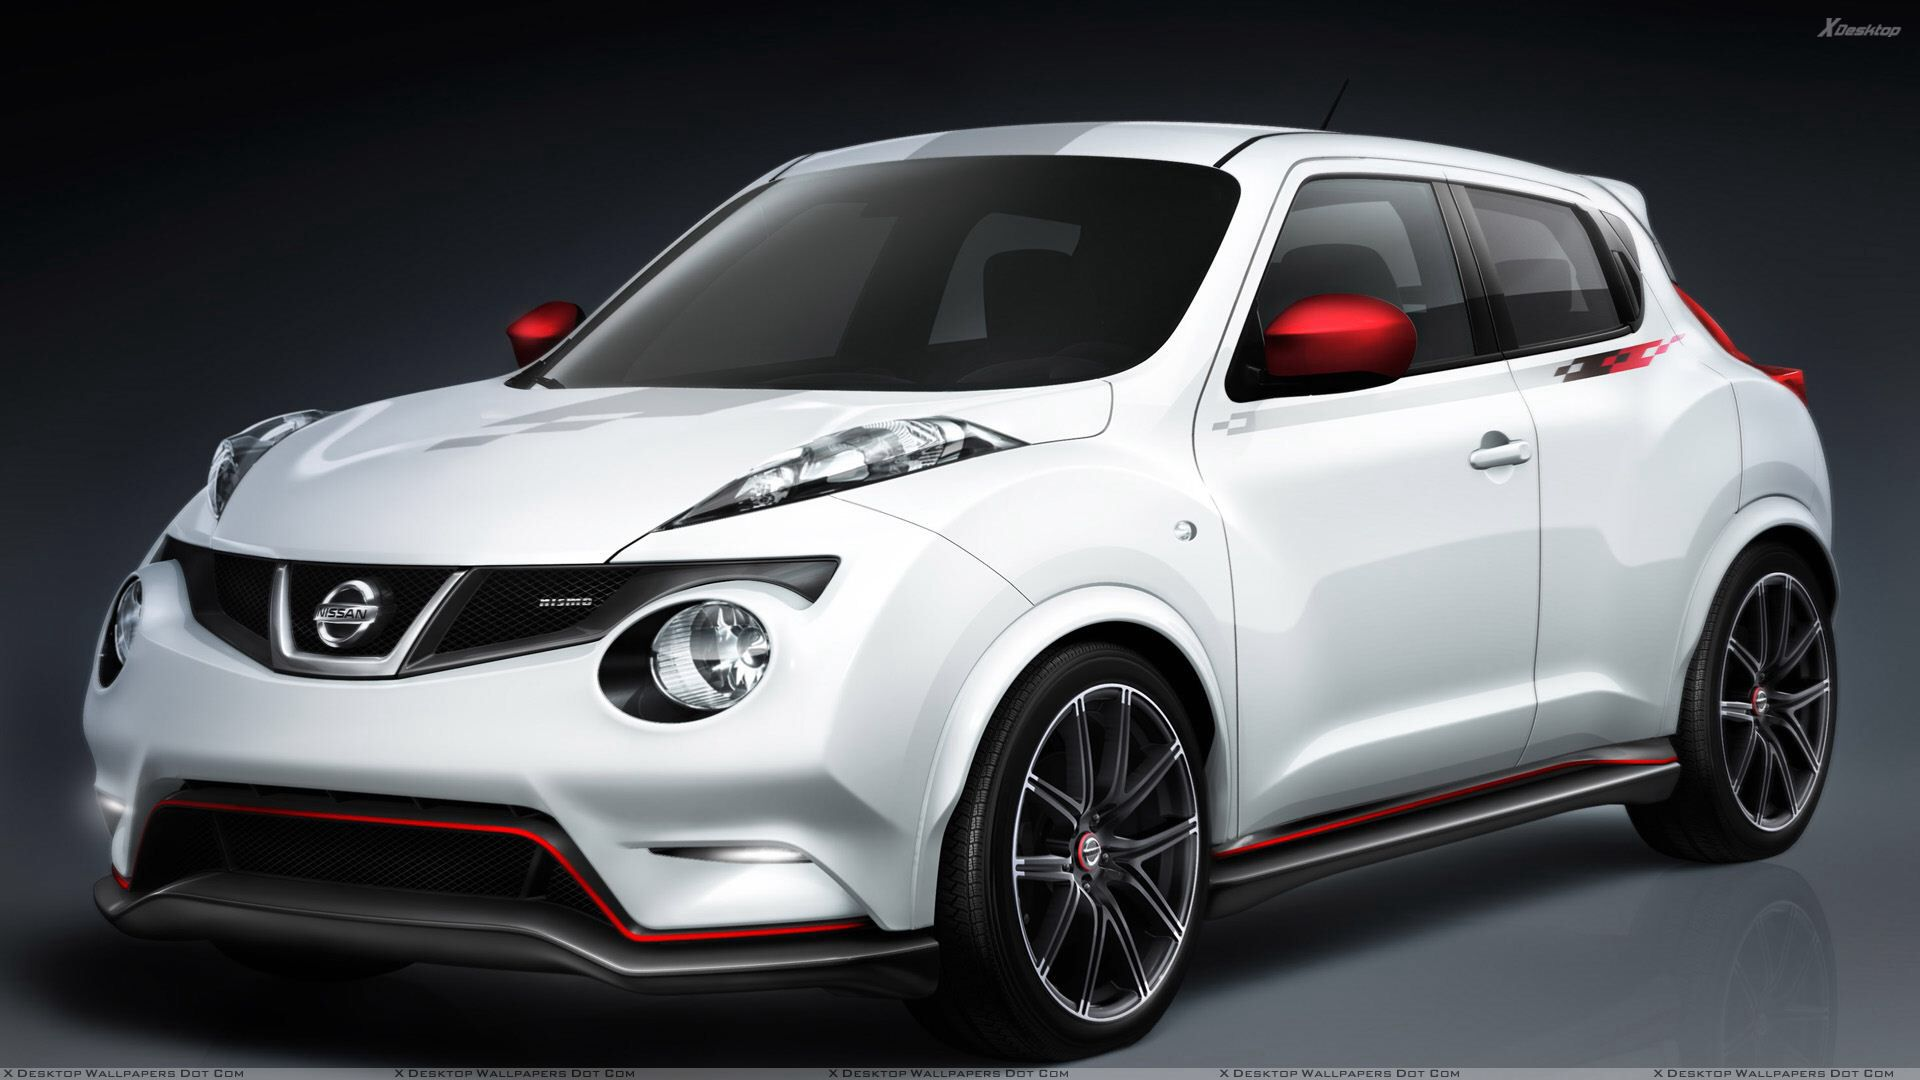 Pin By Claire Corless On Cars I Like Nissan Juke Nissan Nismo